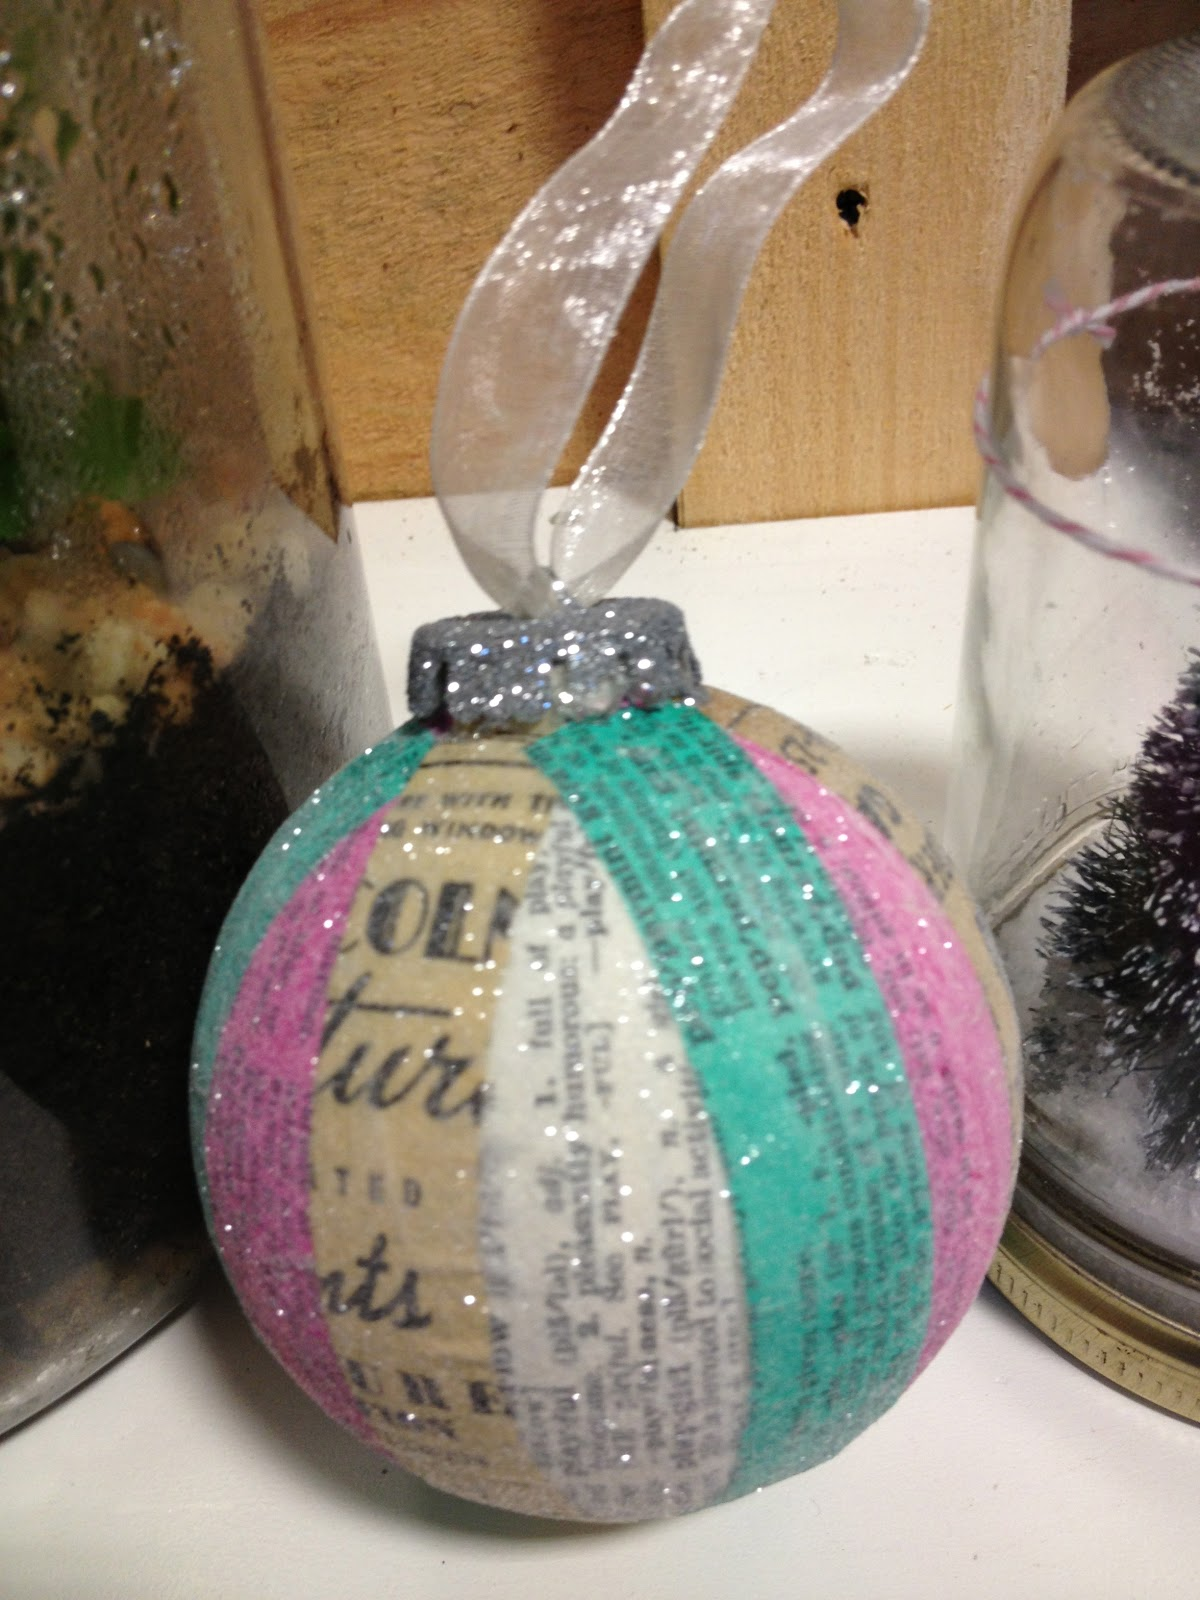 Vintage looking christmas ornaments - If You Take A Close Up Look At This Holiday Tree Ornament You Will Discover That It Is Made Using The Pages Of An Old Dictionary Mixed Media Artist Leslie